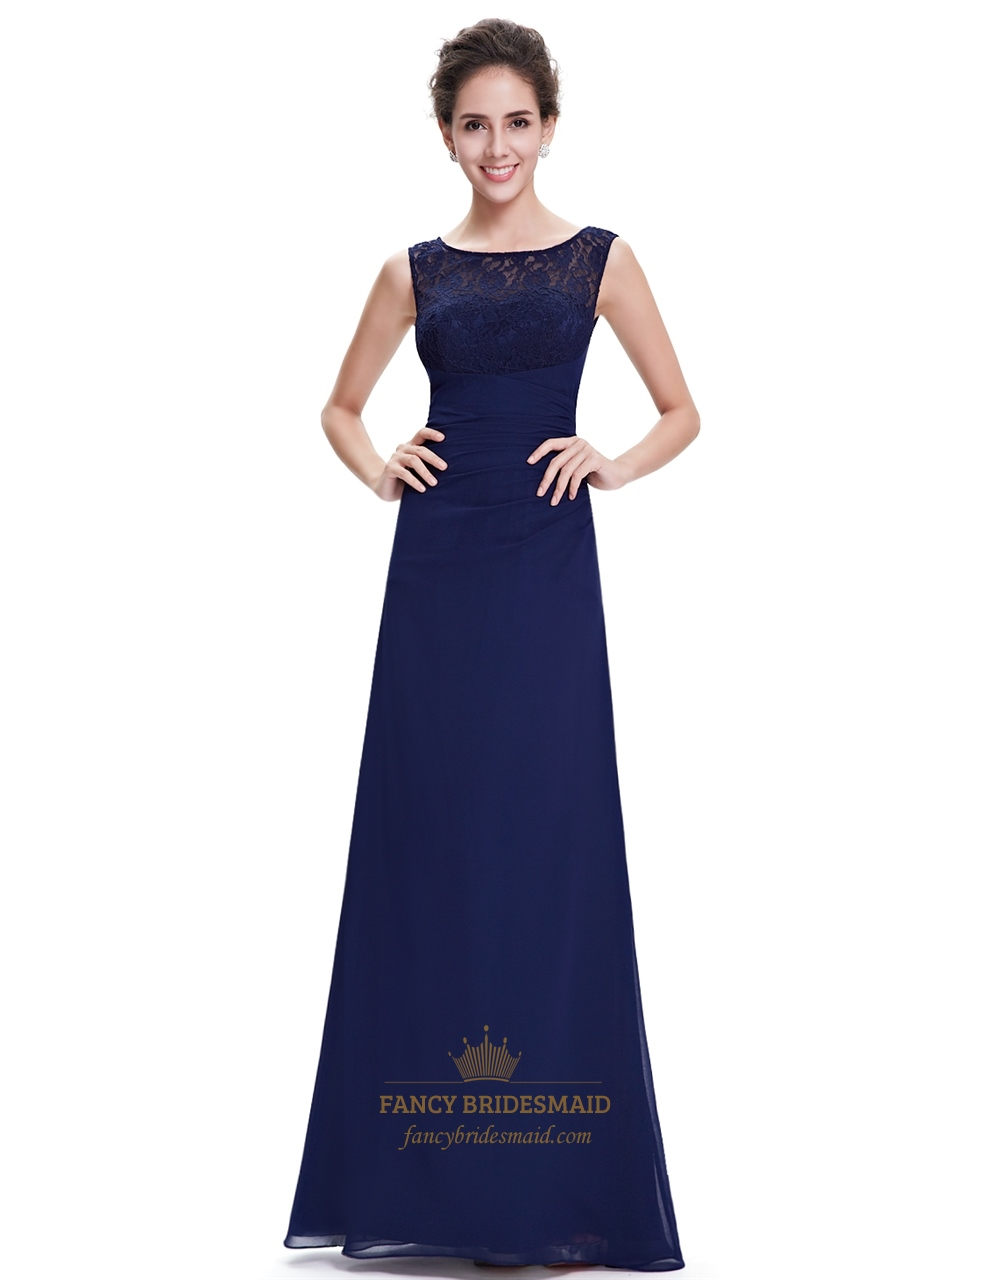 Elegant navy blue chiffon bridesmaid dresses lace top chiffon elegant navy blue chiffon bridesmaid dresses lace top chiffon bottom ombrellifo Gallery